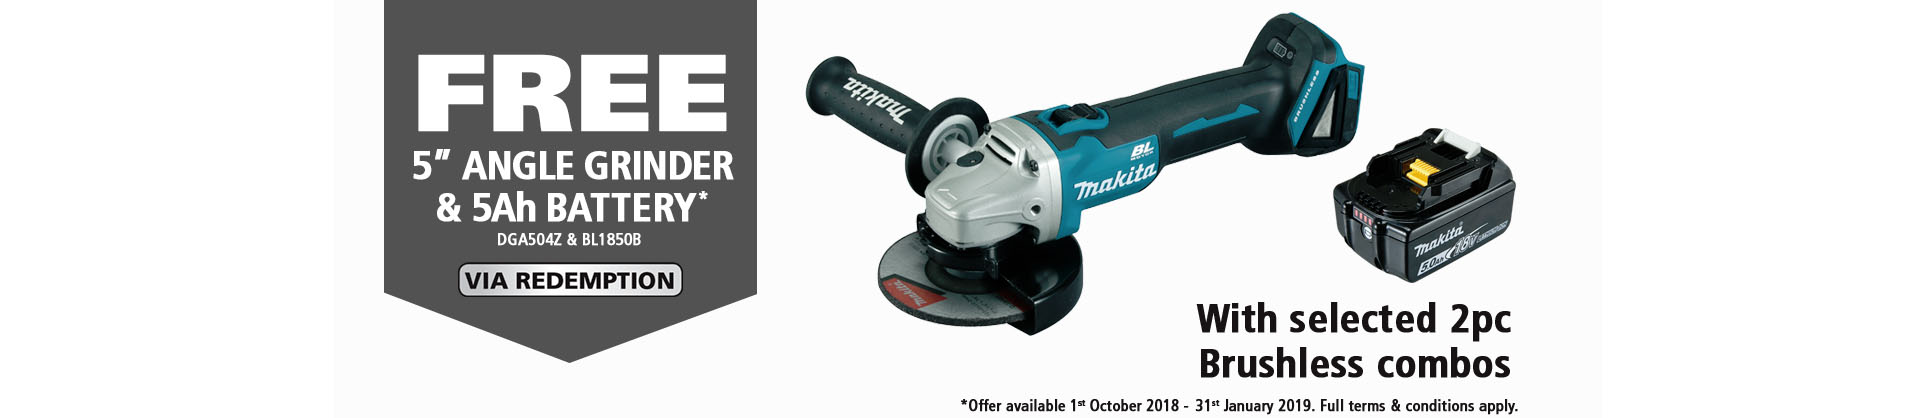 Makita Redemption Offer